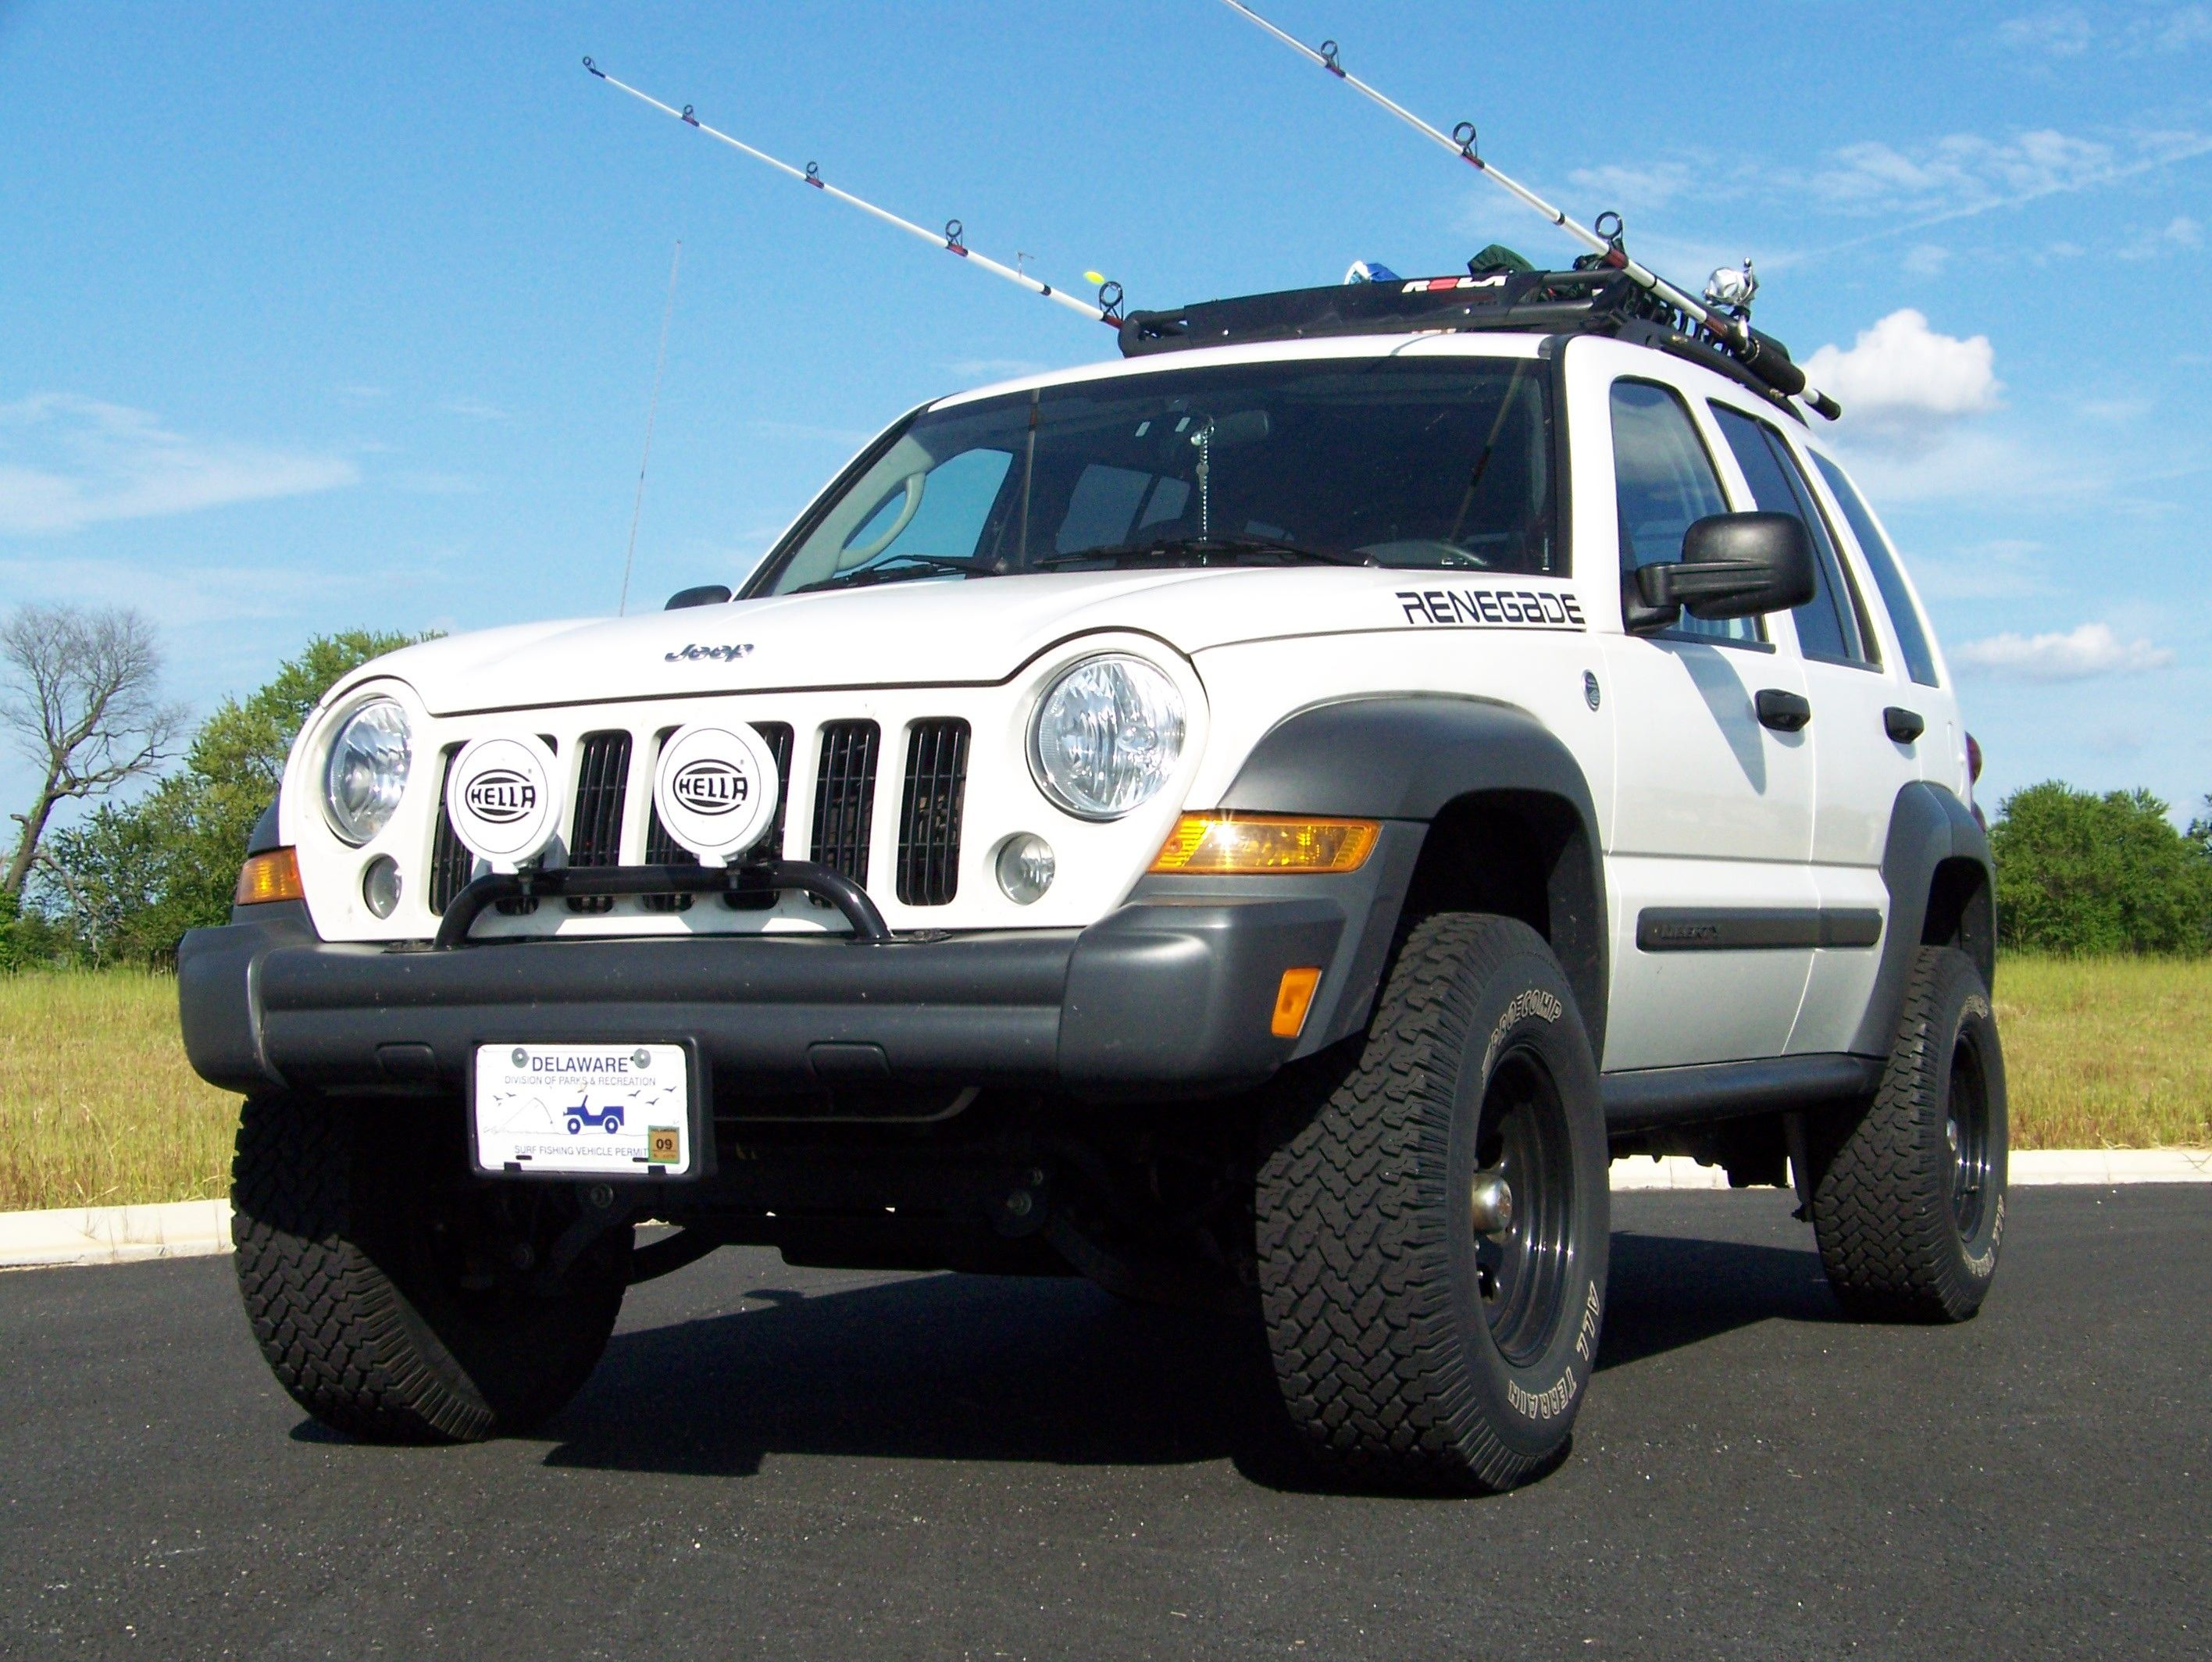 Sportjp S 2006 Jeep Liberty Photo Gallery Cardomain Com 2006 Jeep Liberty Jeep Jeep Liberty